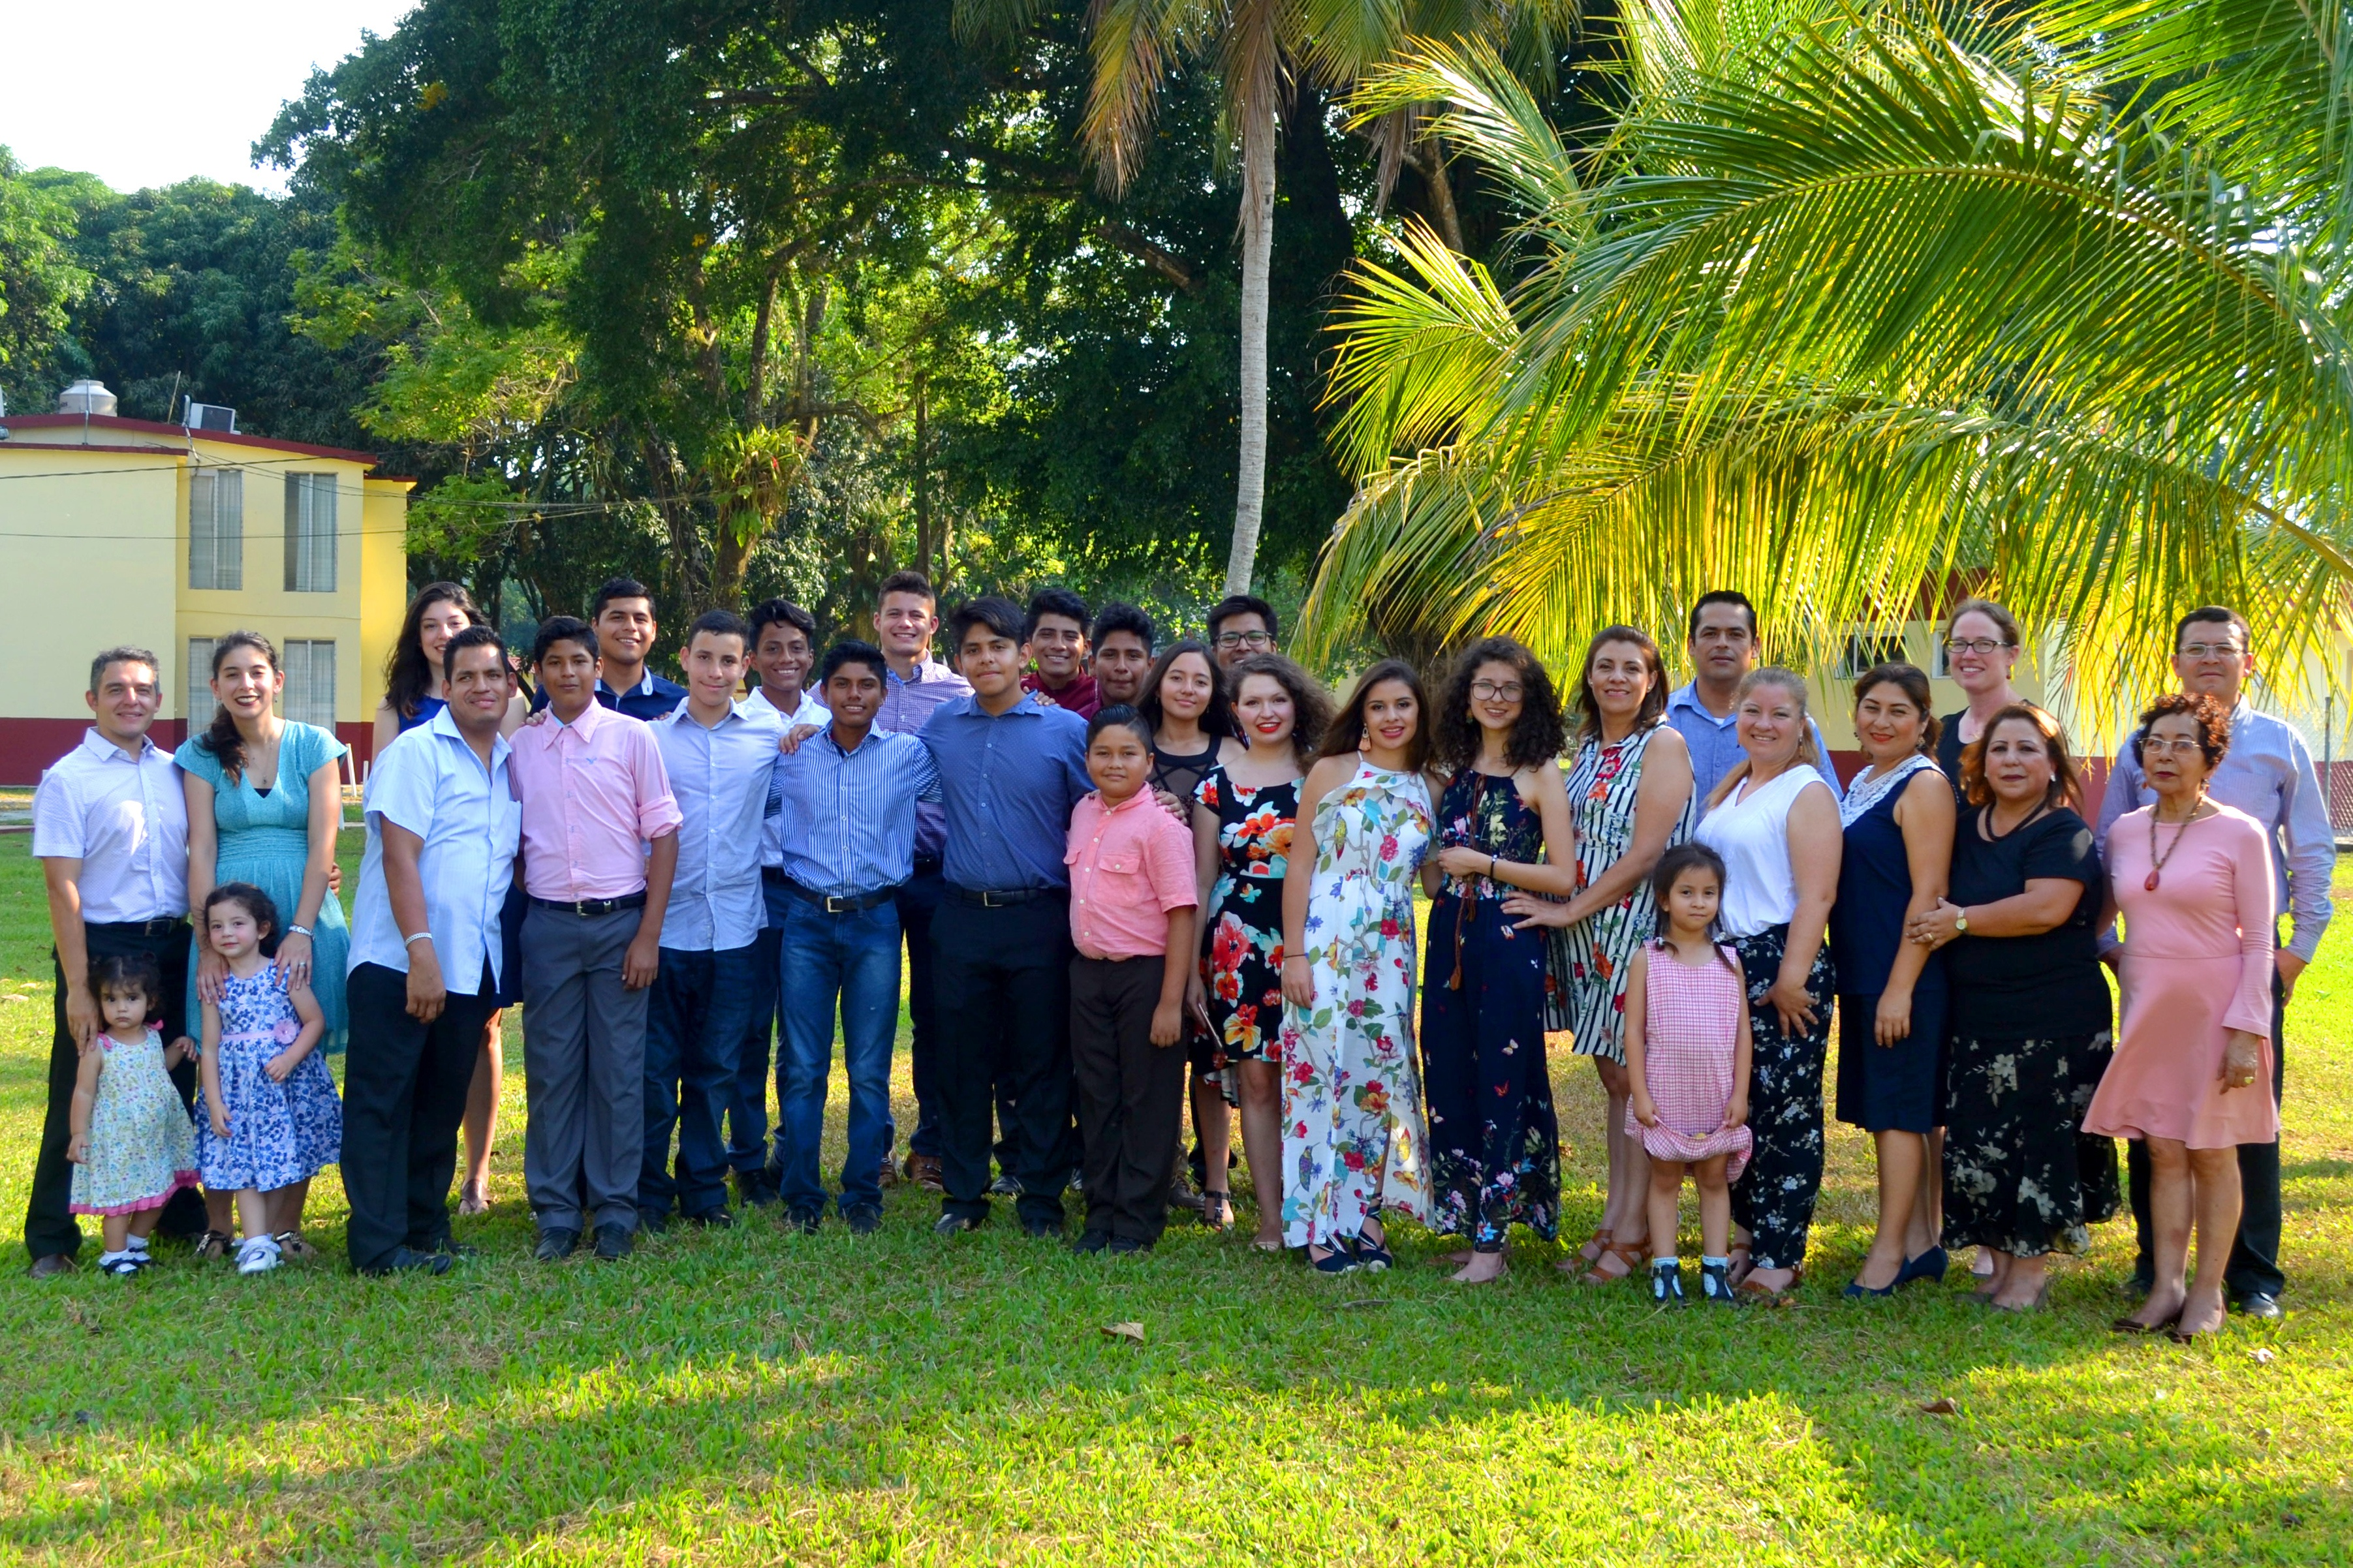 Group photo of campers and staff in Mexico.